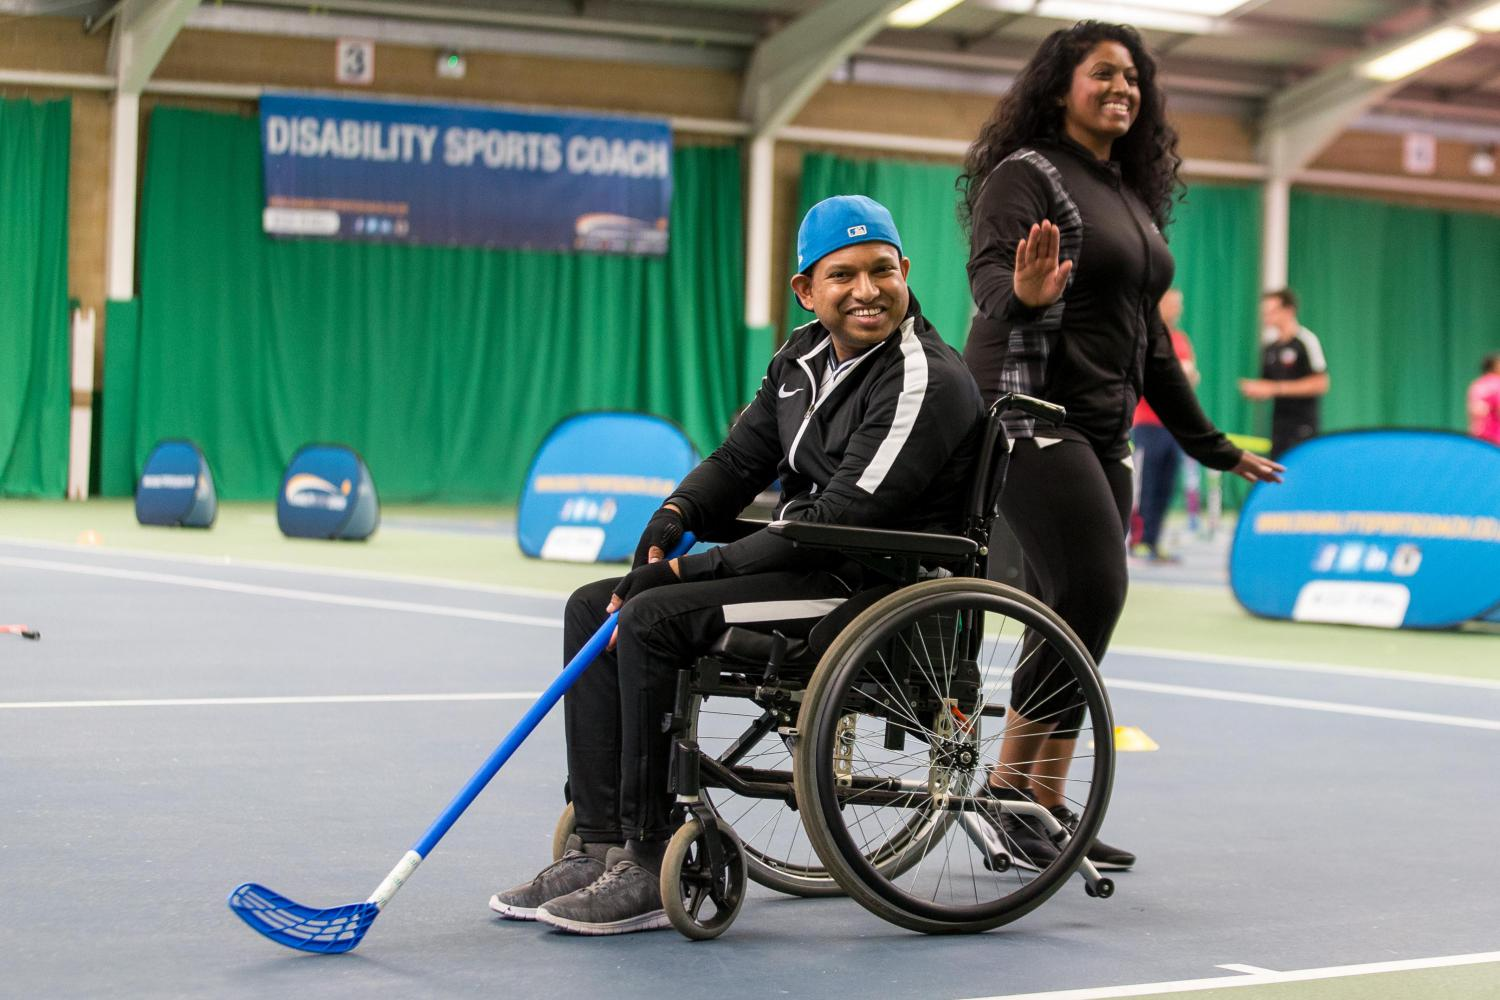 Disability Sports Coach Community Clubs